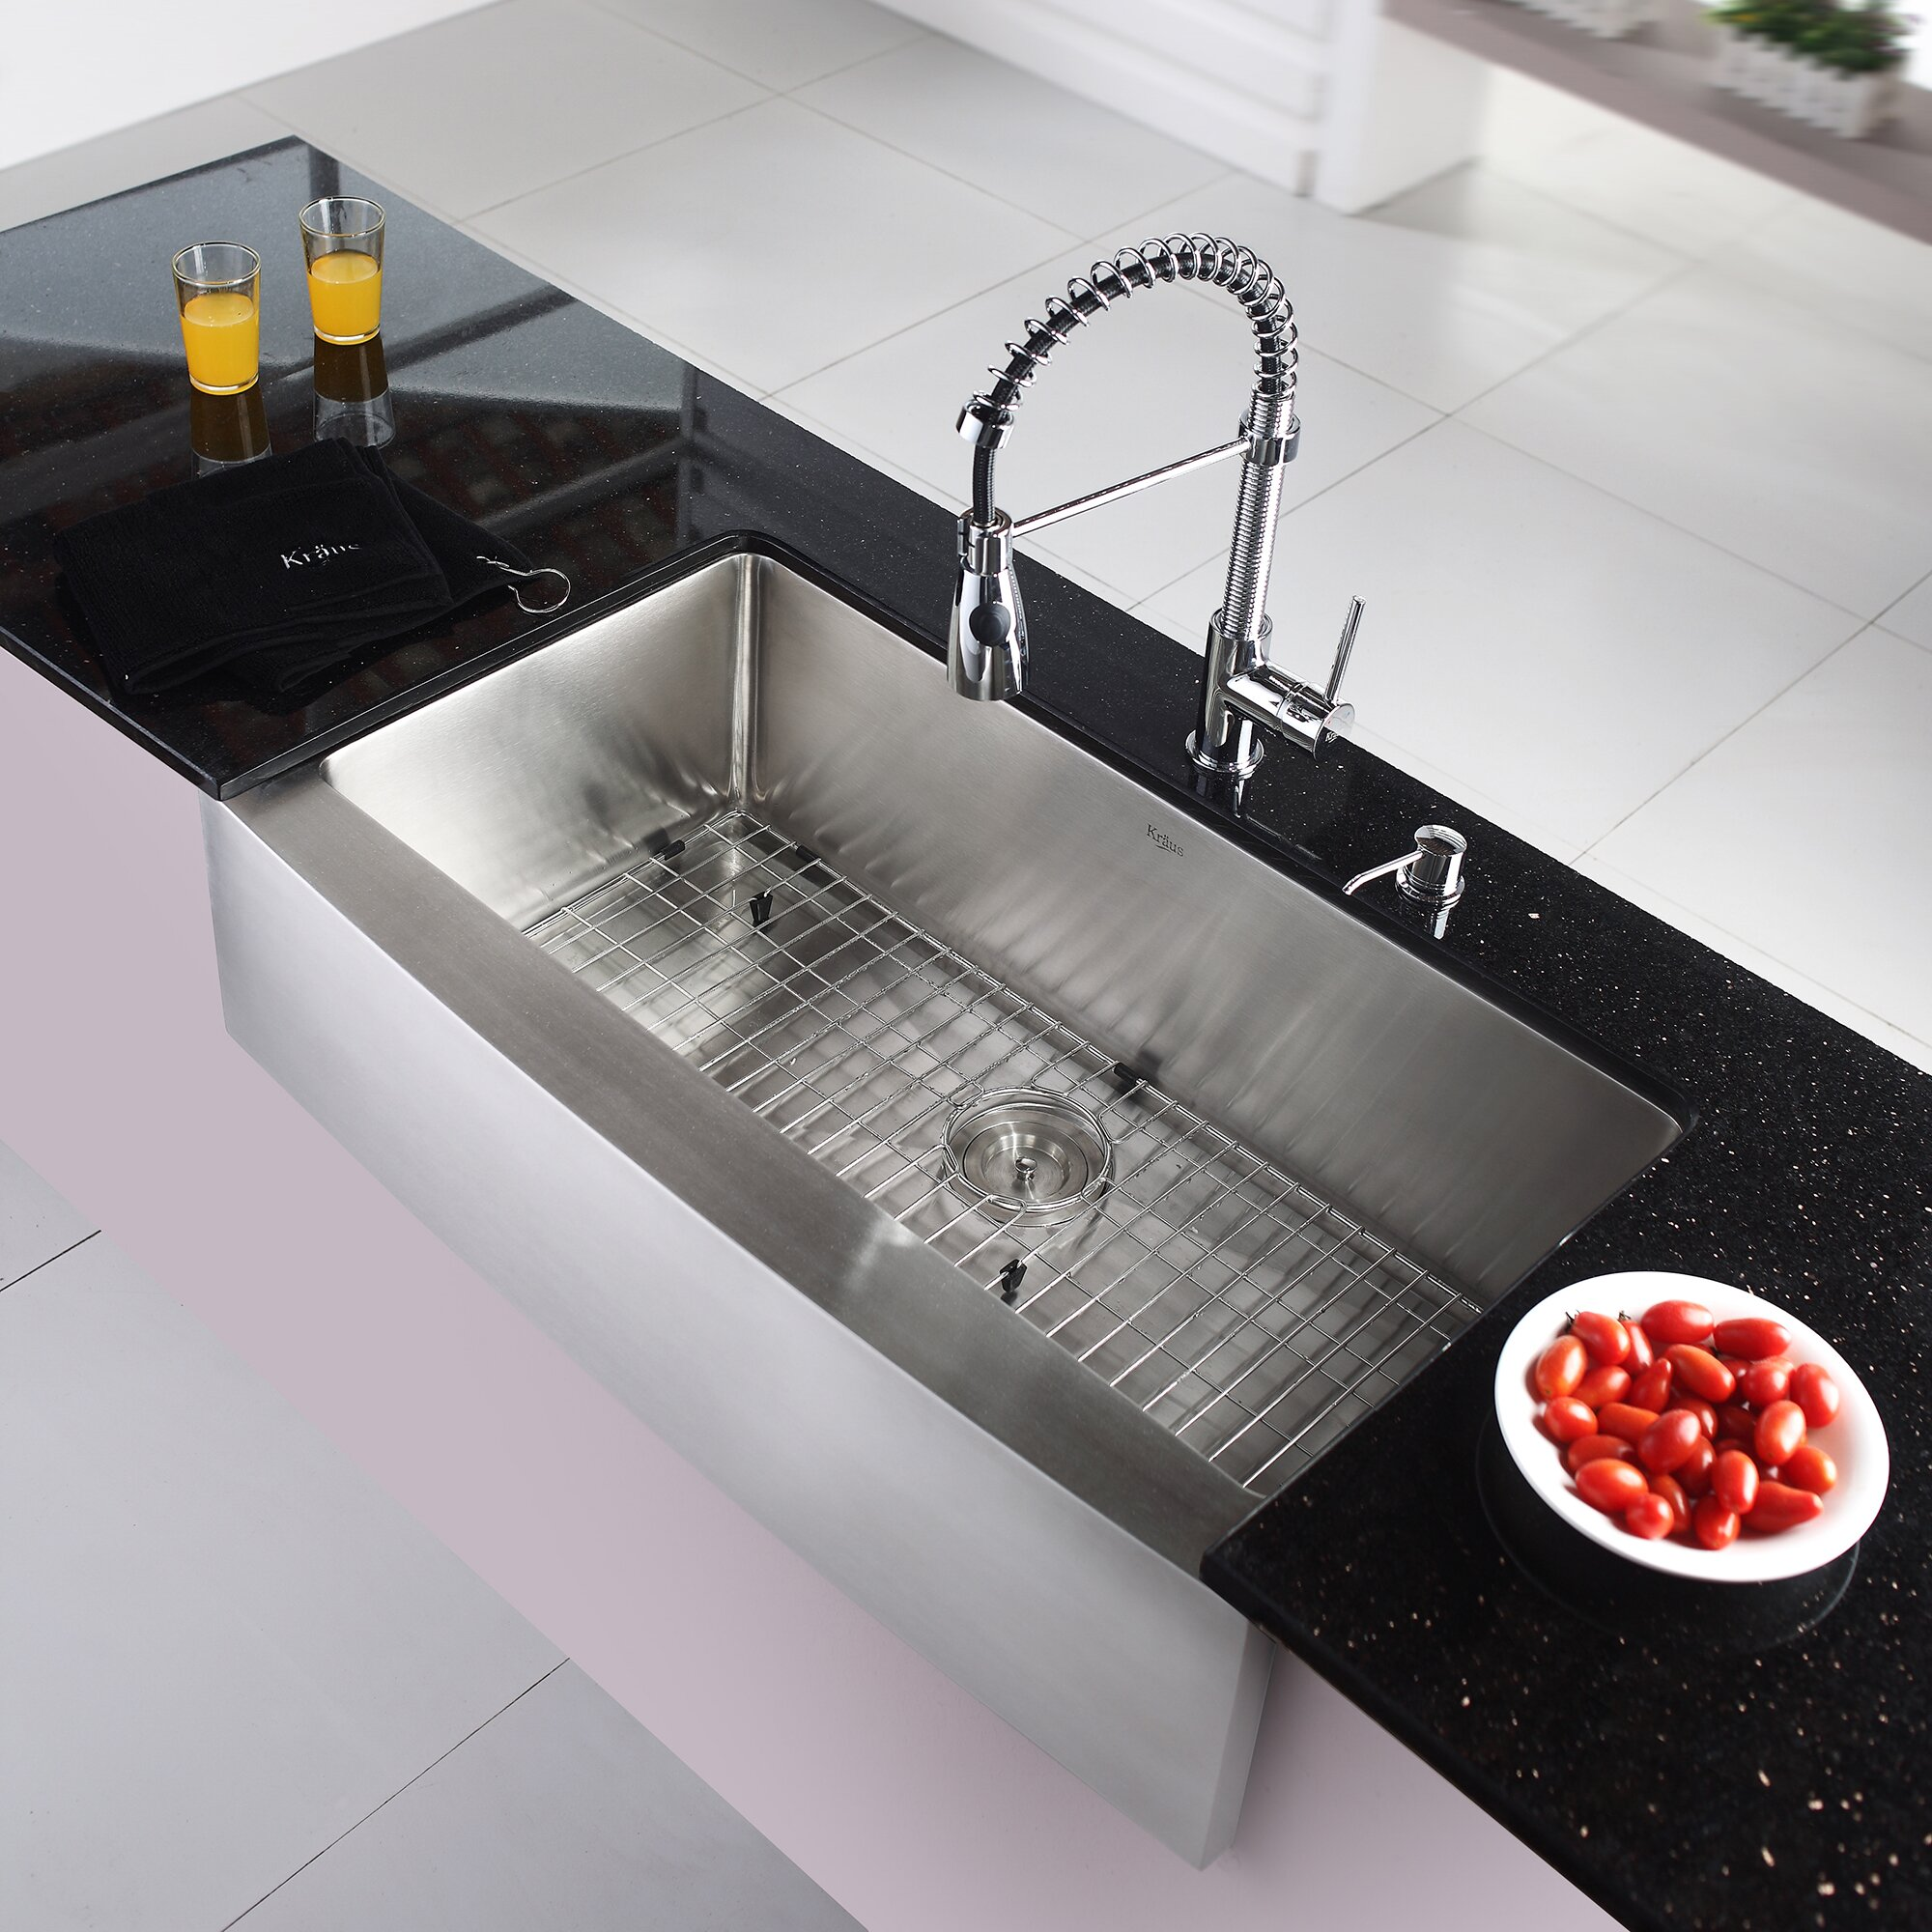 Kraus Stainless Steel 35.9 x 20.8 Farmhouse Kitchen Sink with Faucet and Soap Dispenser